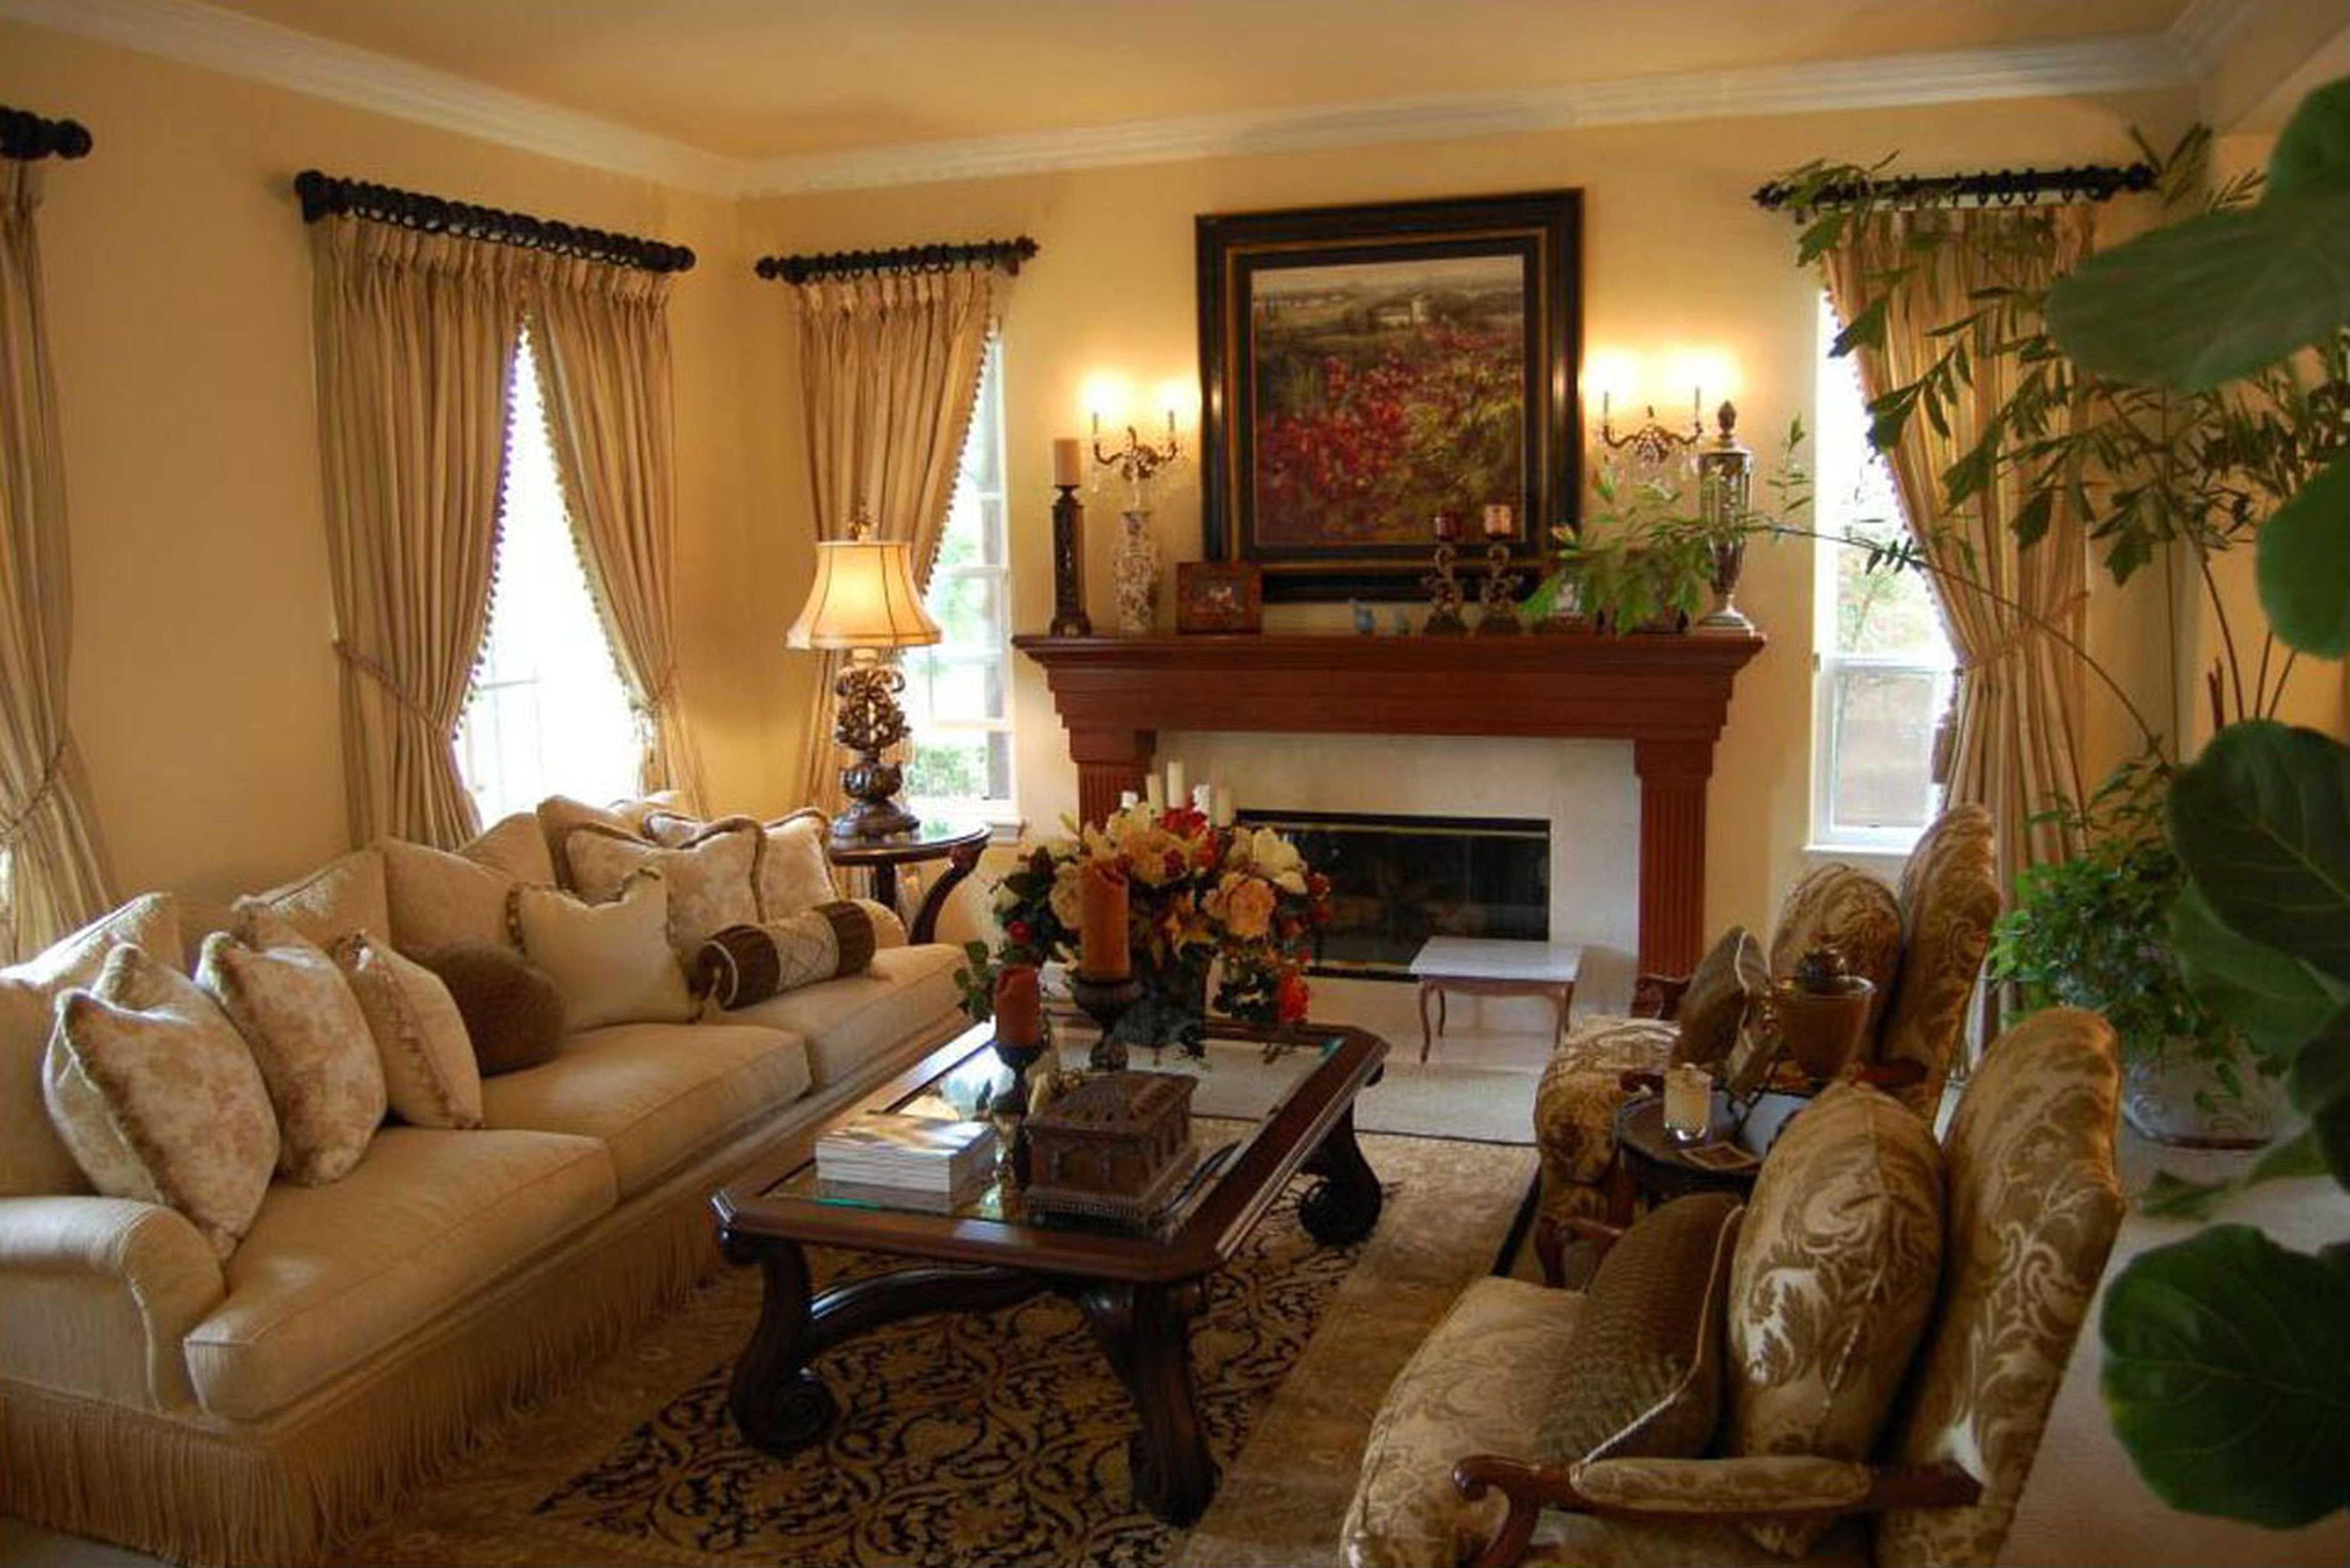 10 Trendy Traditional Living Room Furniture Ideas living room traditional decorating ideas awesome outstanding 2020